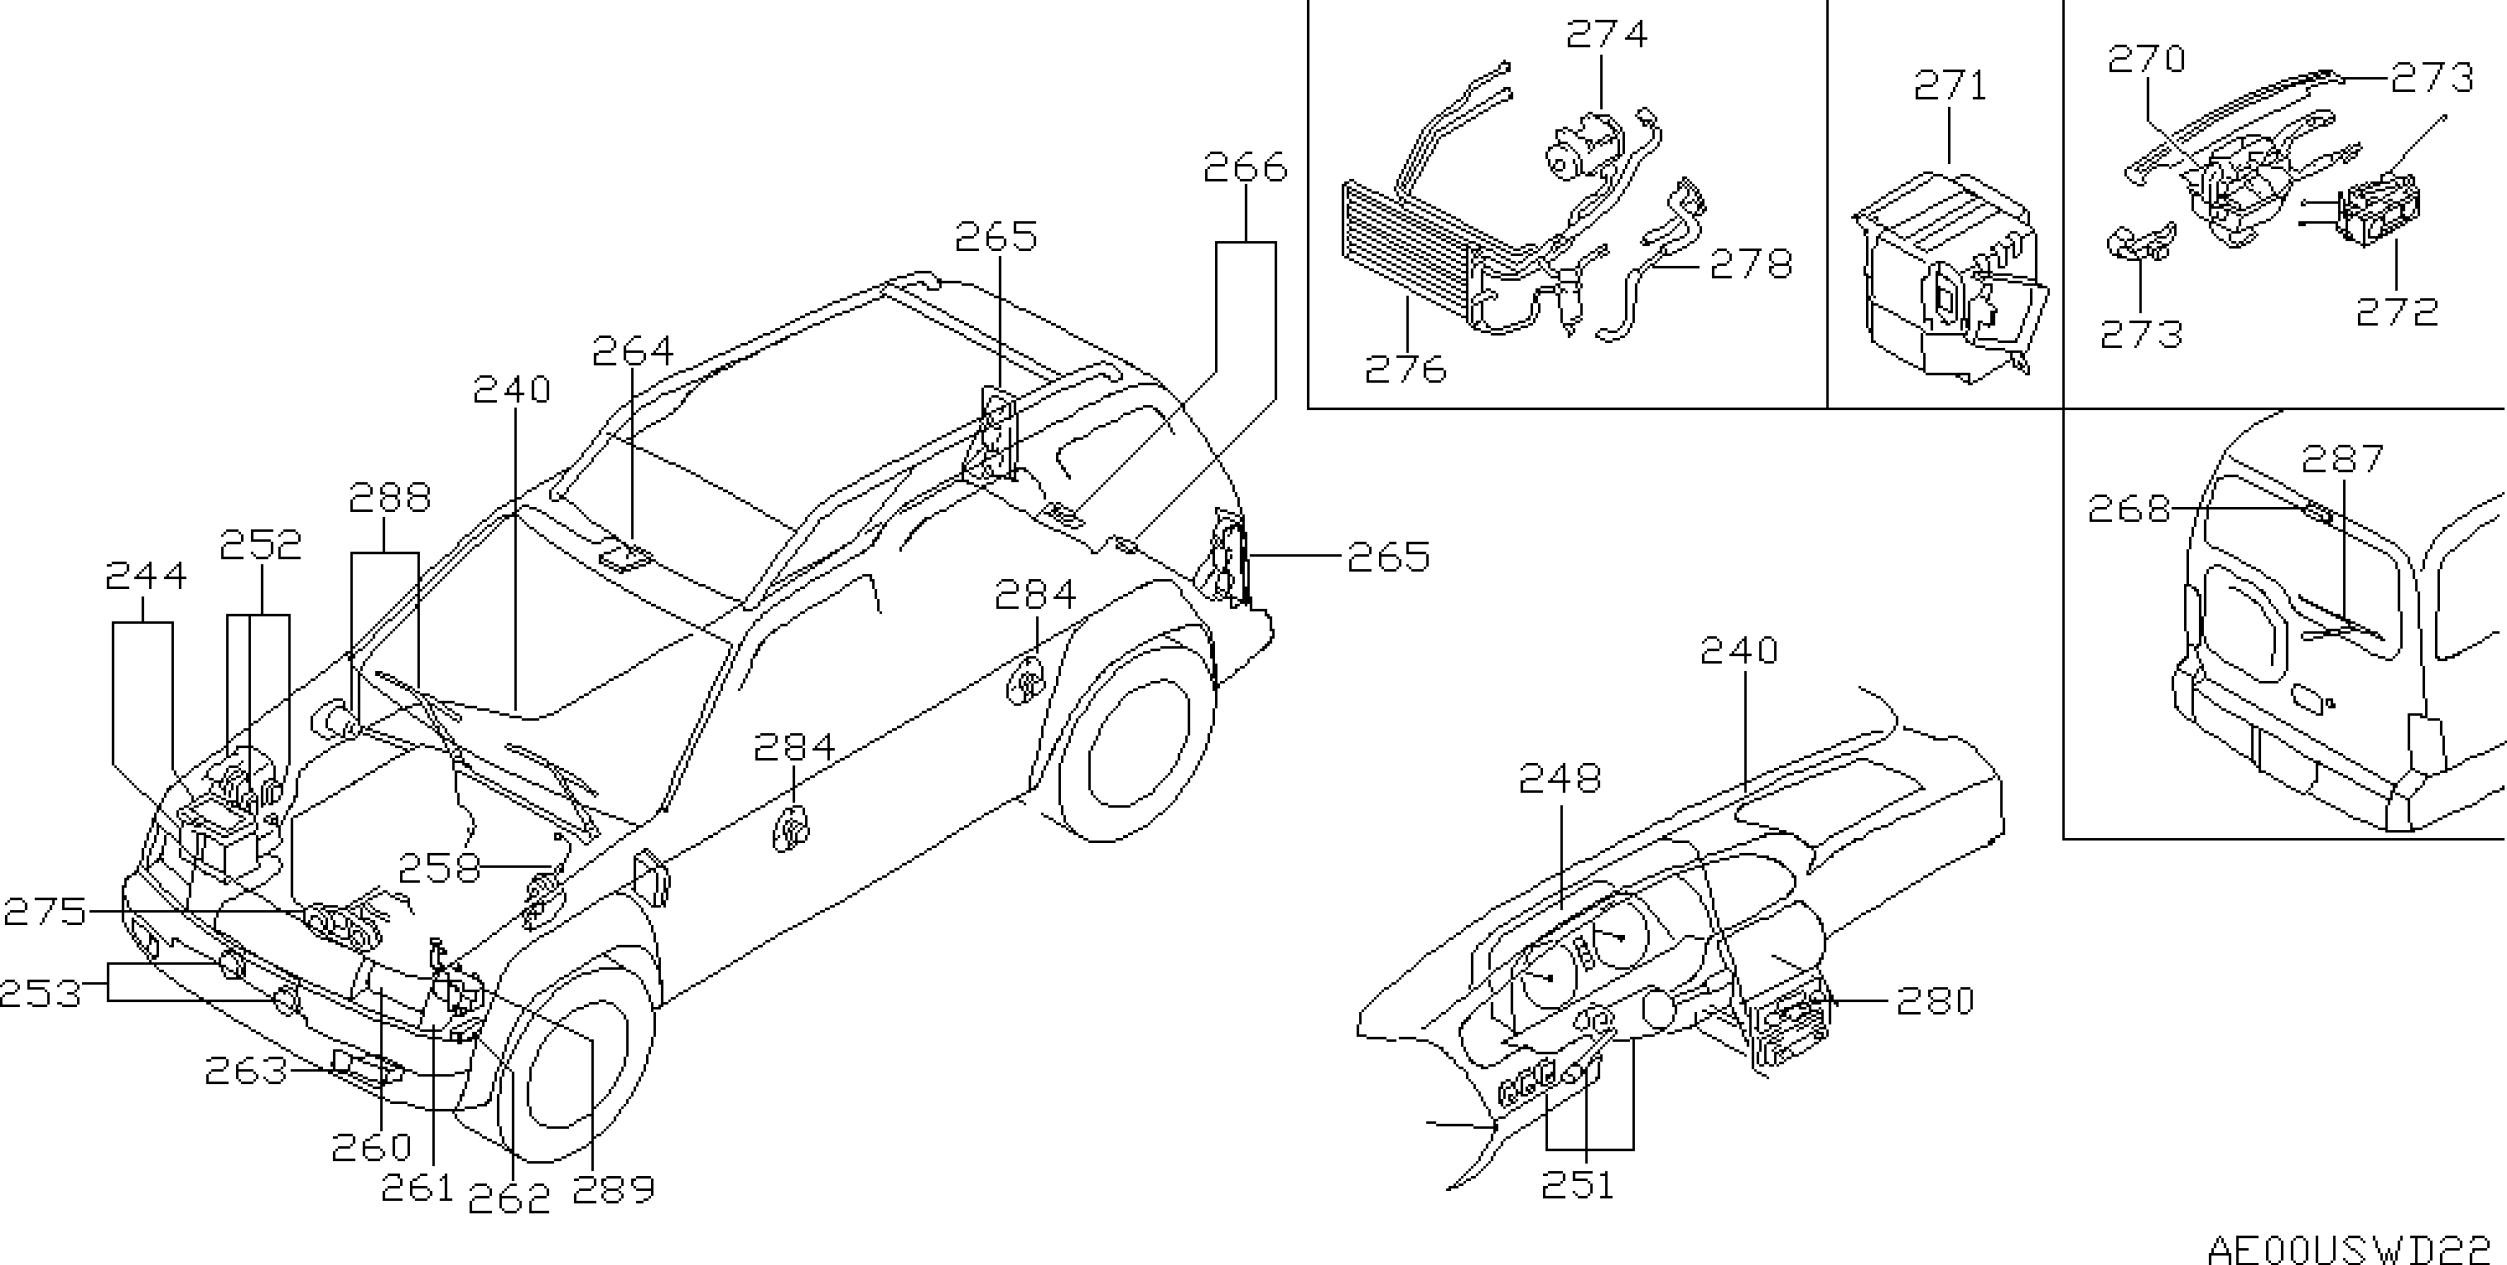 Nissan Xterra Parts Diagram